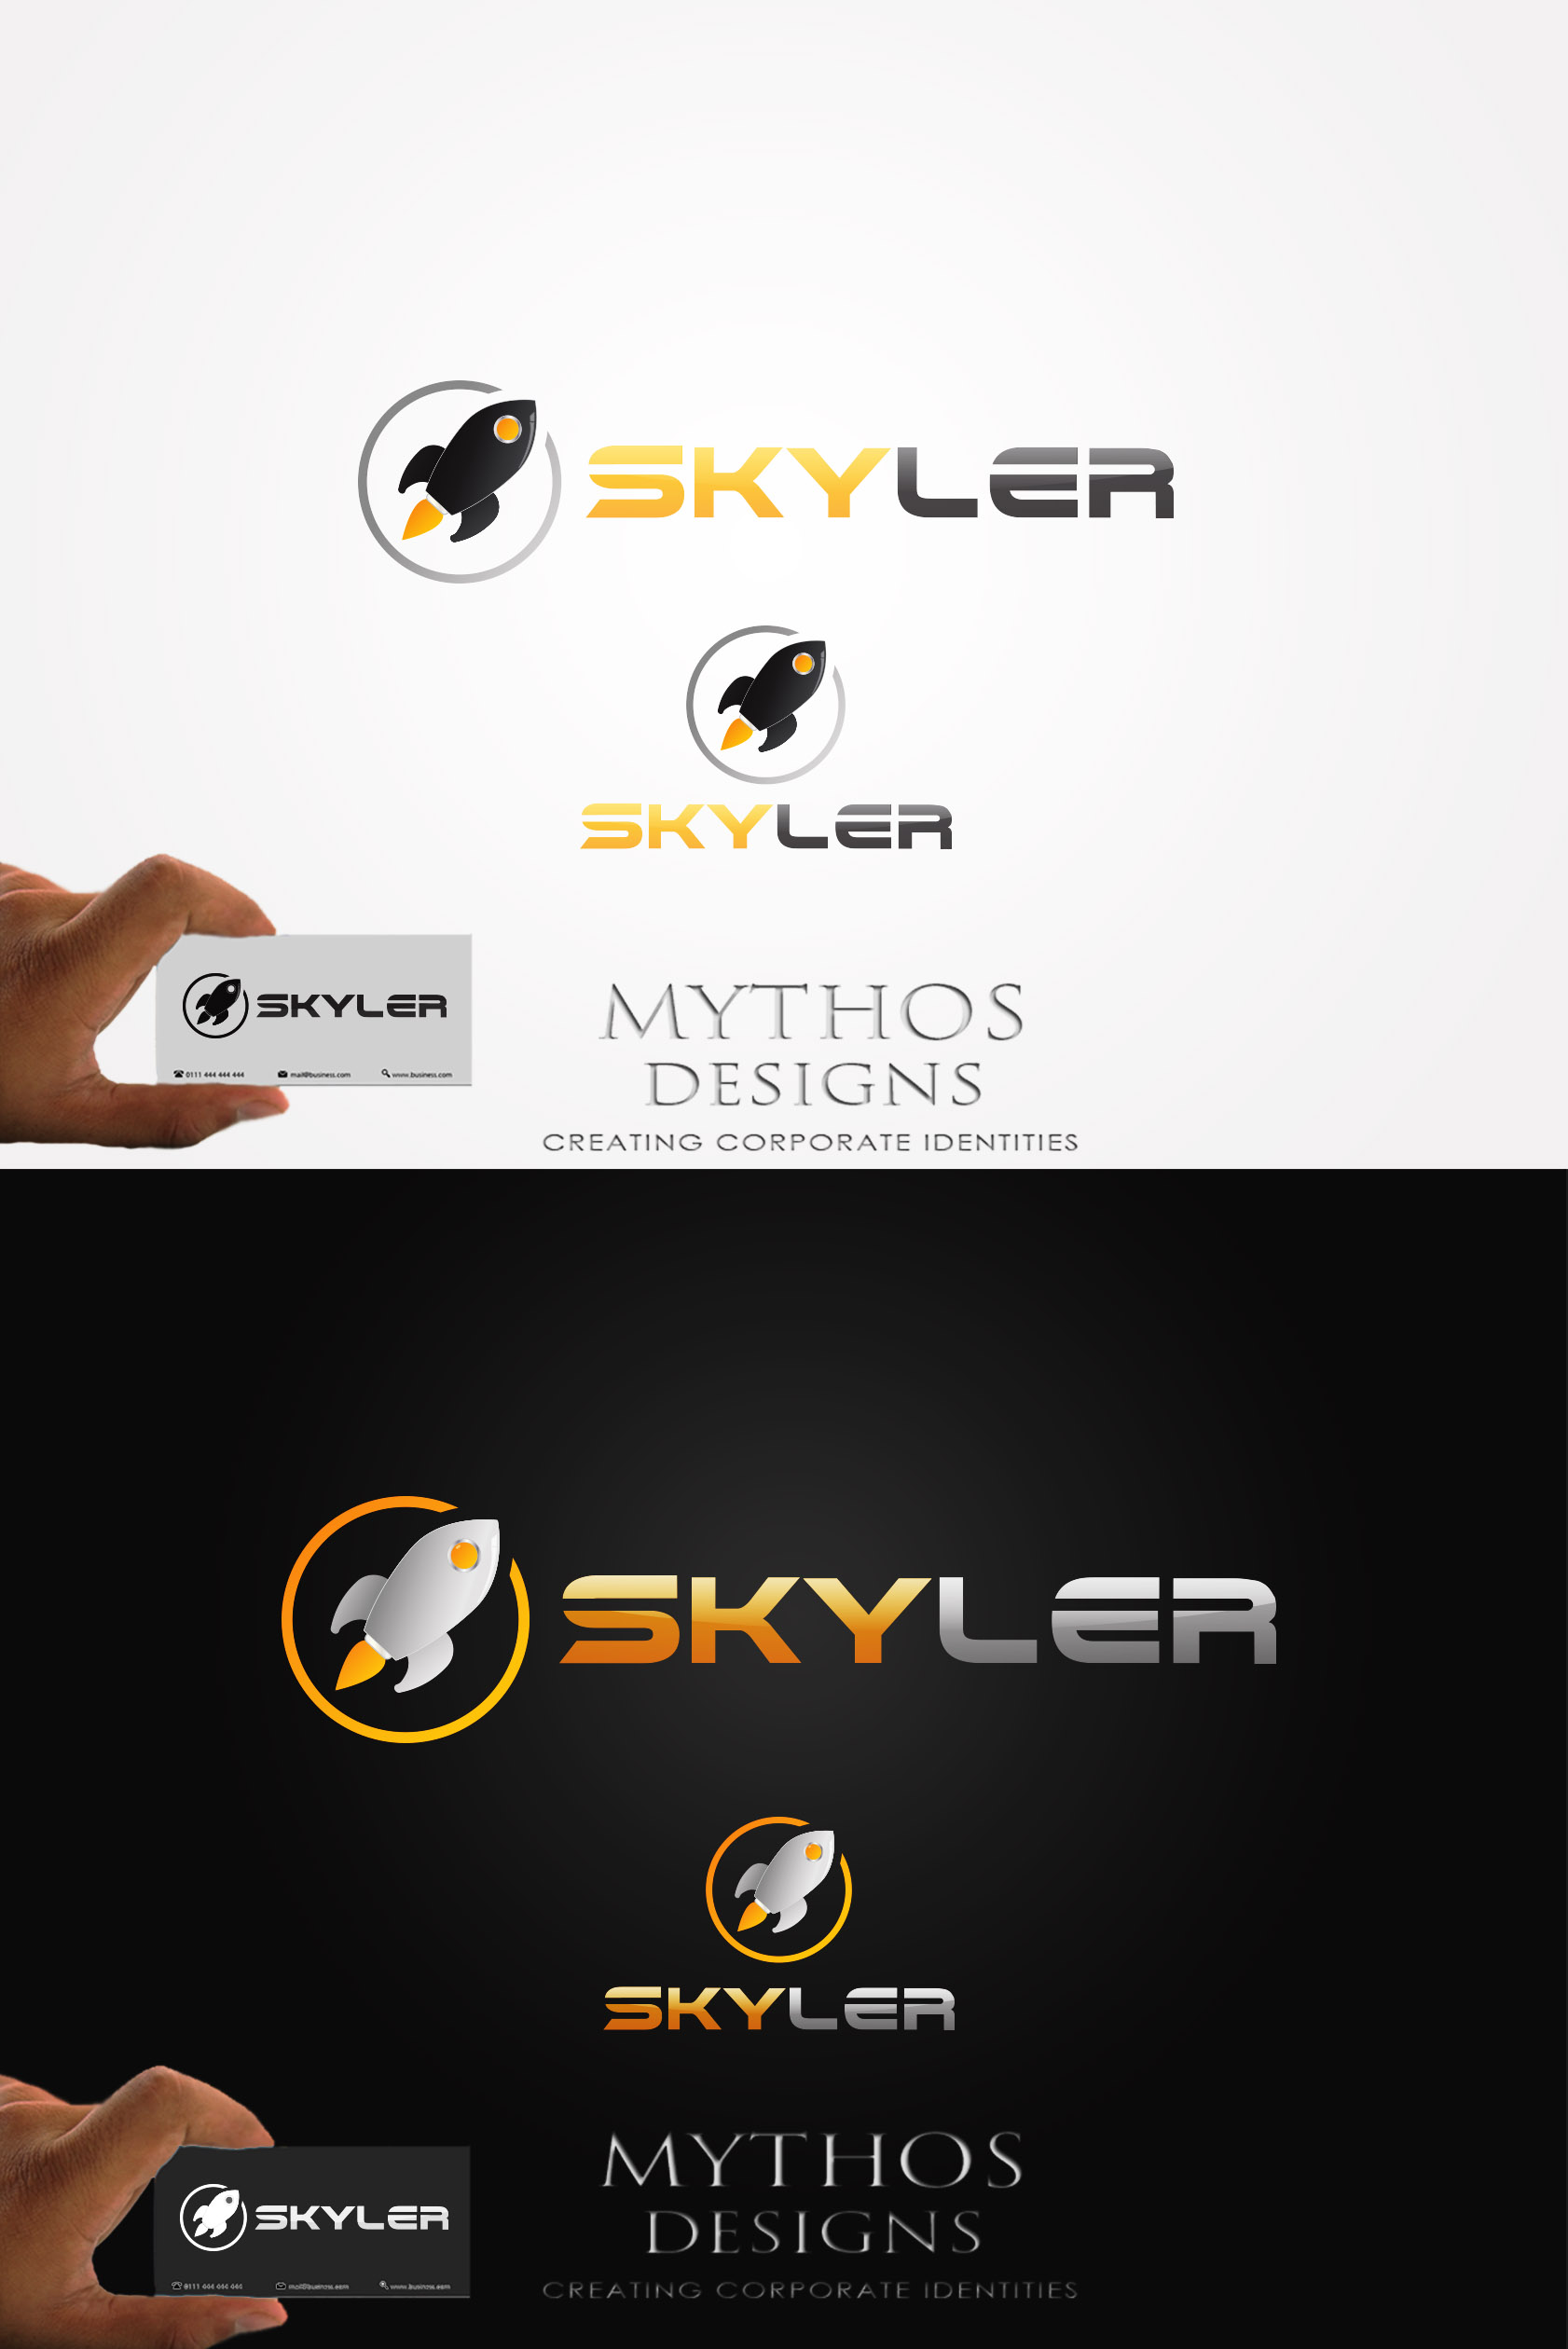 Logo Design by Mythos Designs - Entry No. 242 in the Logo Design Contest Artistic Logo Design for Skyler.Asia.